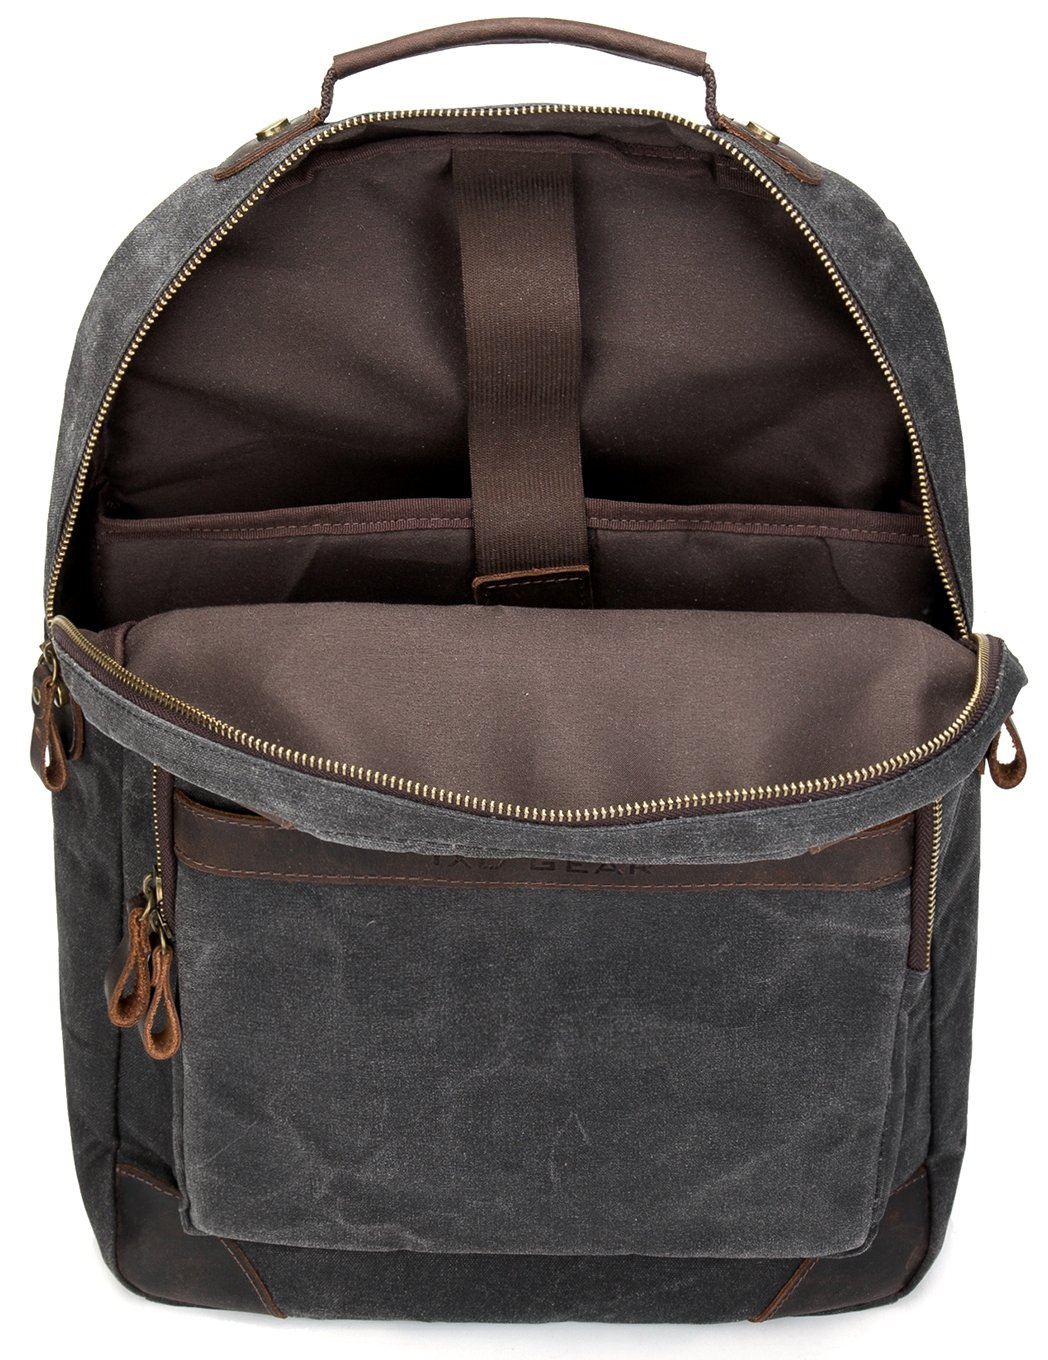 Vintave Waterproof Oil Waxed Canvas Genuine Crazy Horse Leather College Weekend Travel Laptops Backpack Fit to Laptop Up to 15.6 Inch By 1XD GEAR by 1XD GEAR (Image #4)